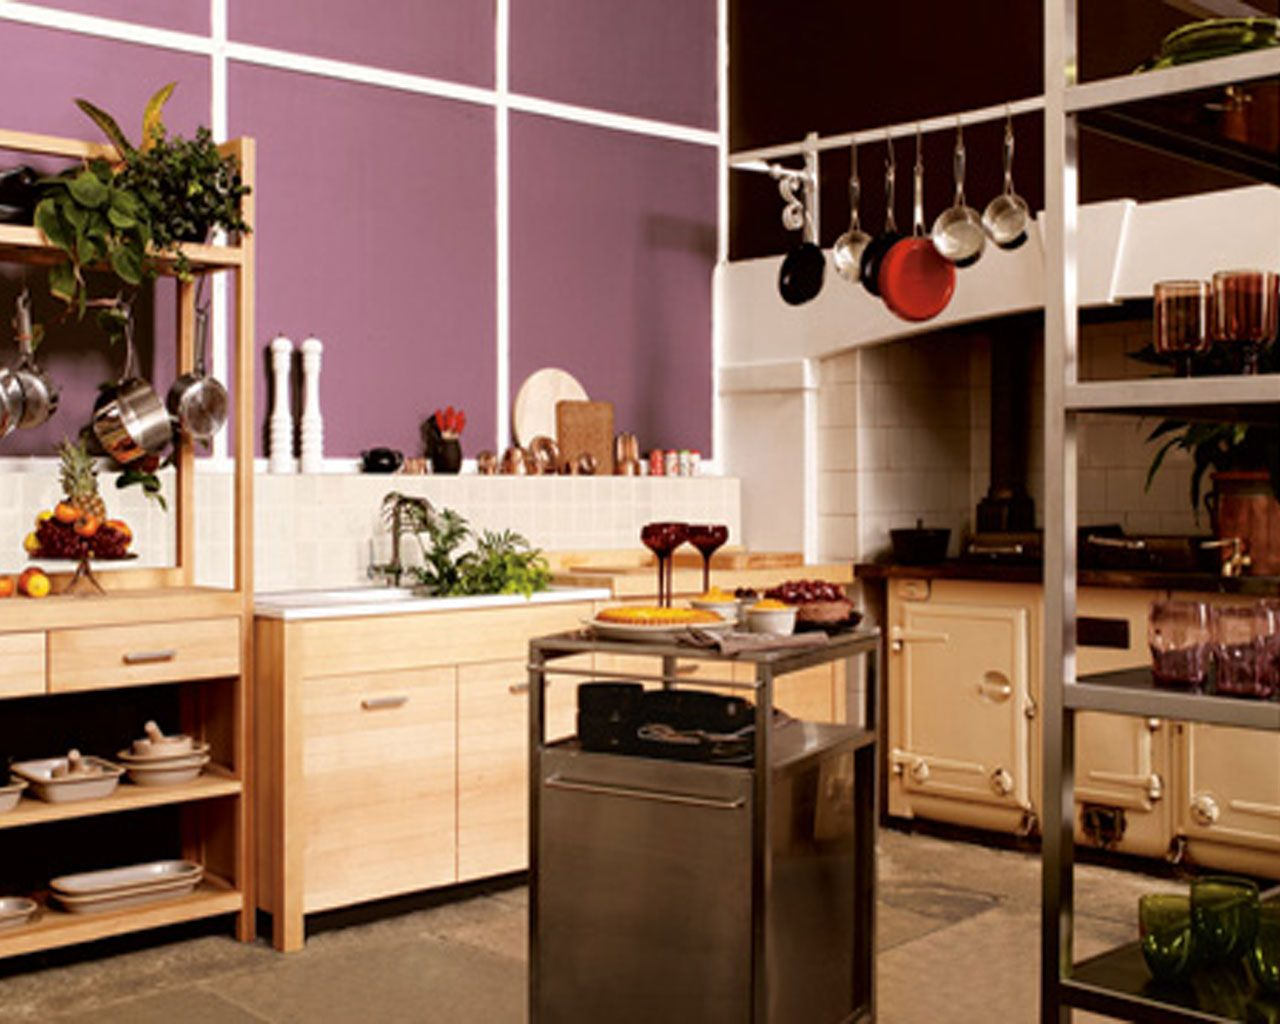 best images about purple rooms on pinterest purple dining kitchen design ideas 2013 - Best Kitchen Design Ideas